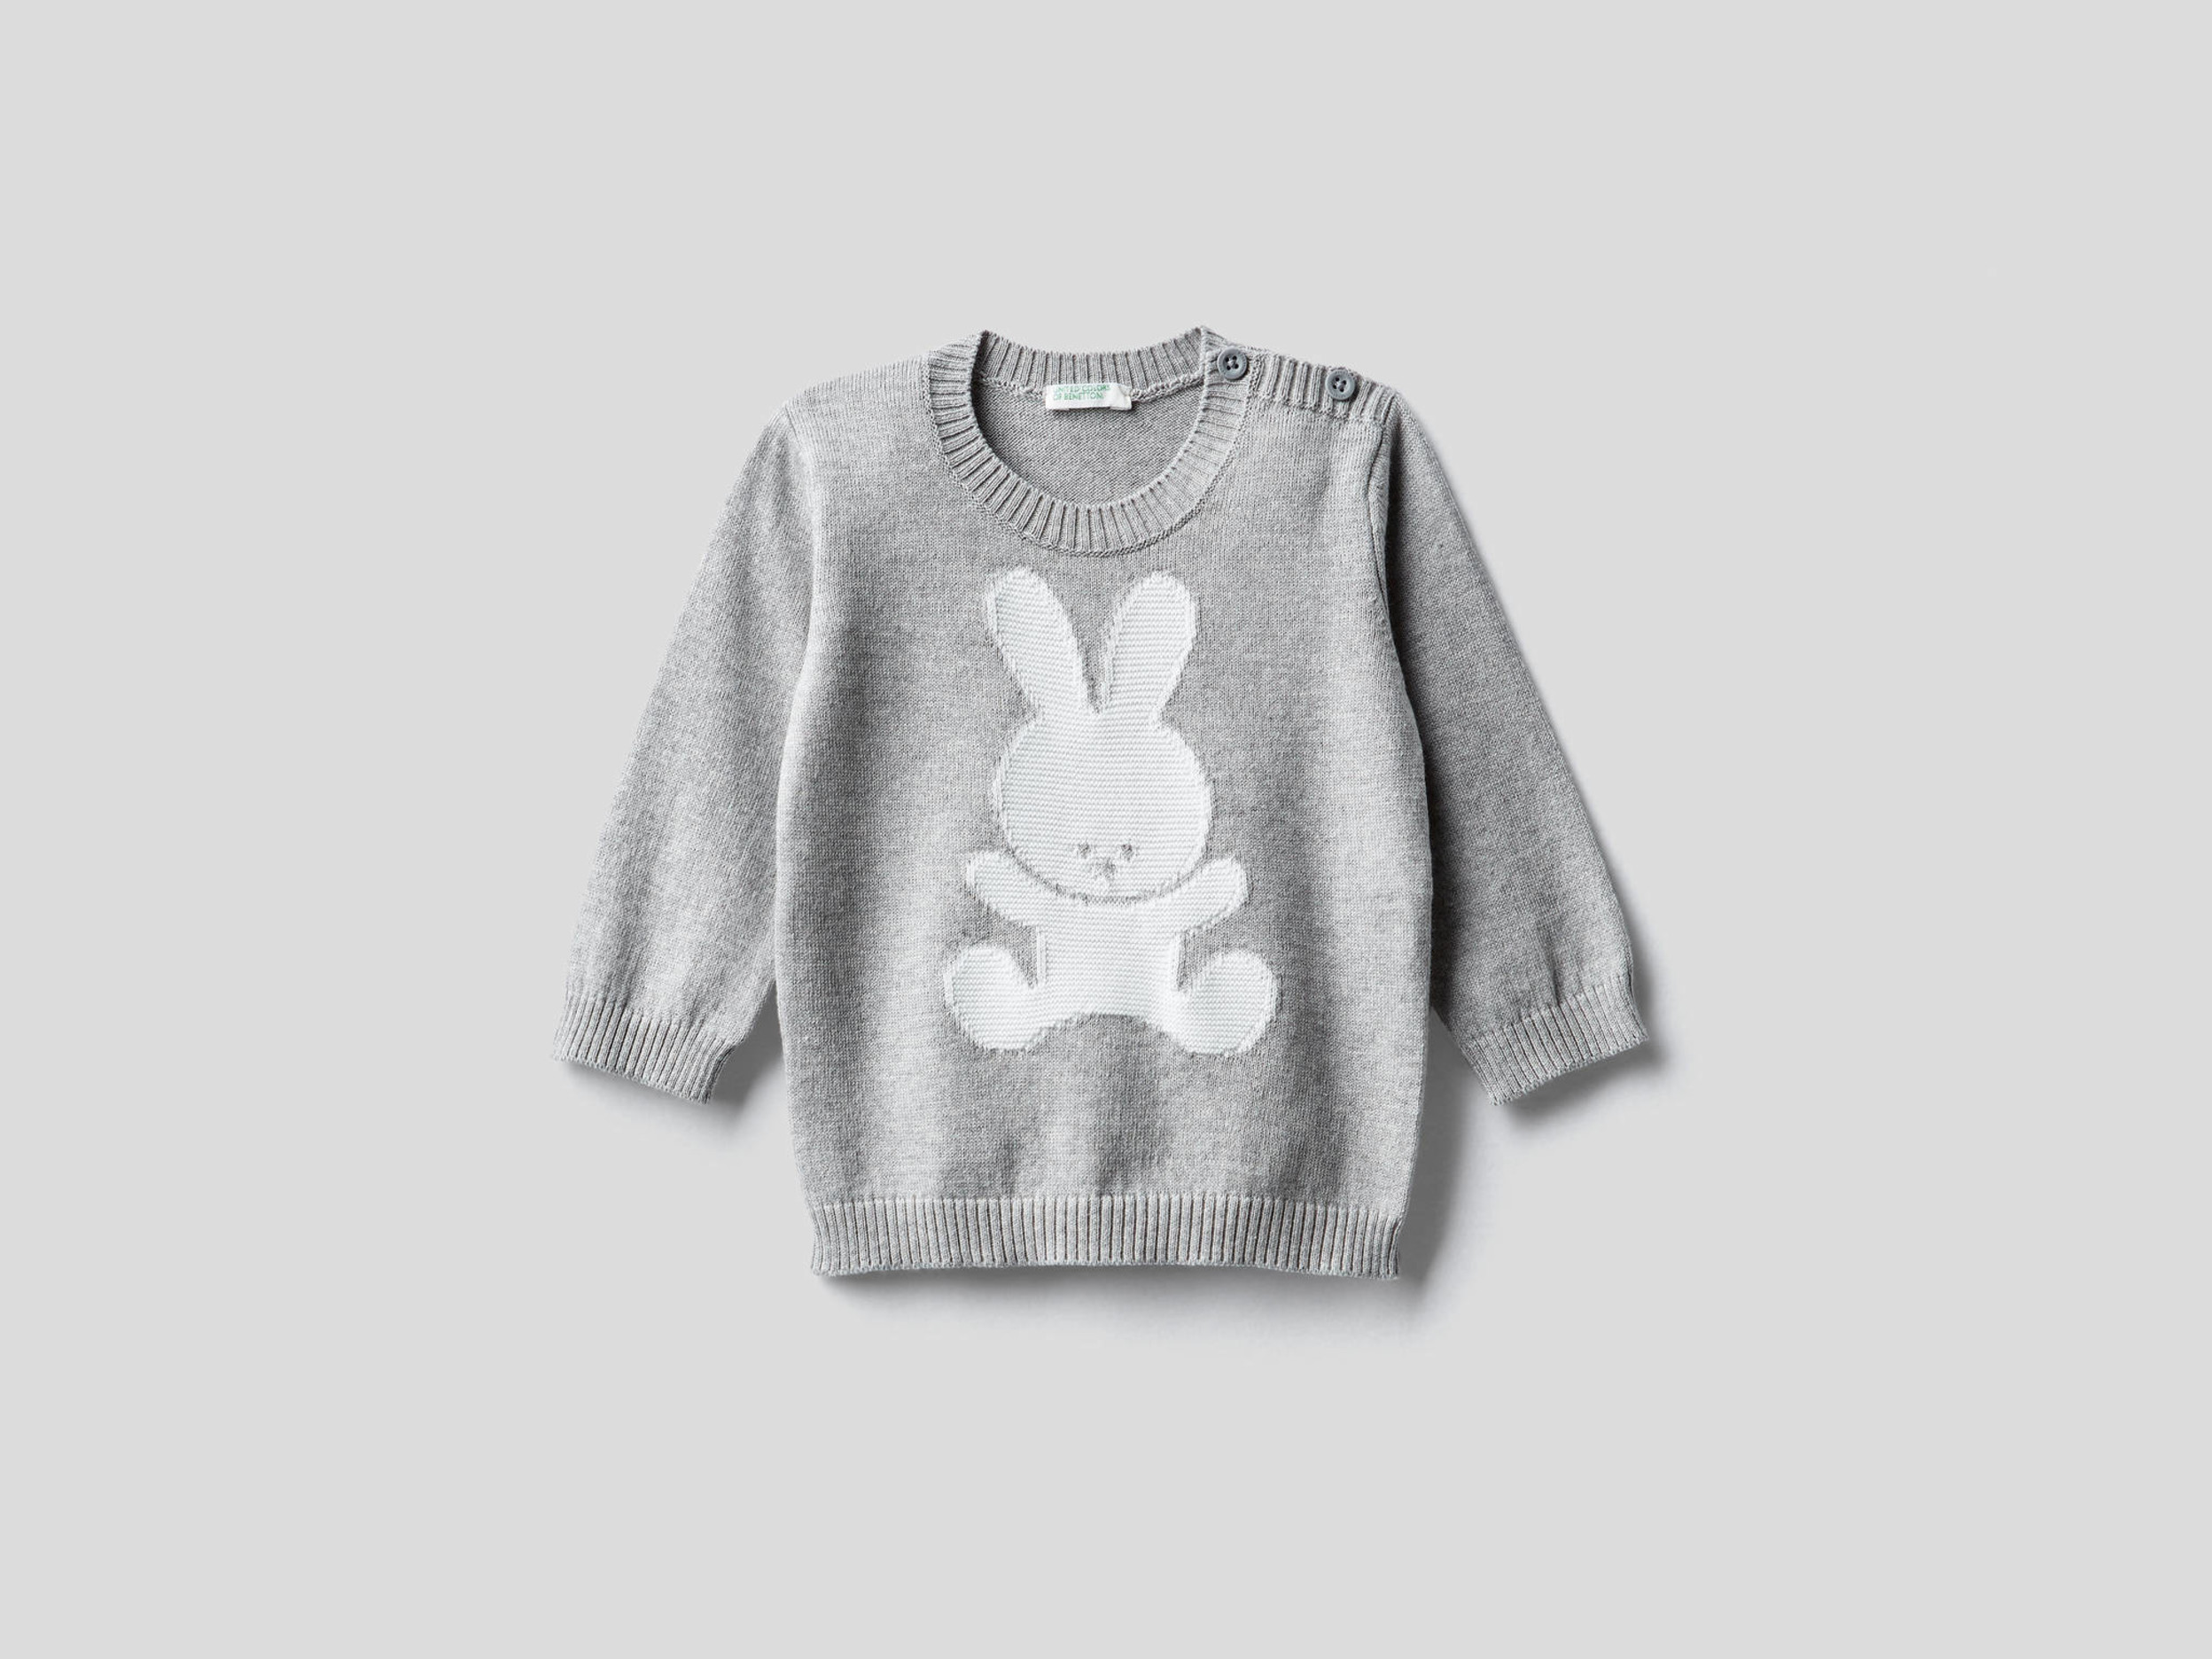 Benetton, 100% Cotton Sweater With Inlay, size , Gray, Kids